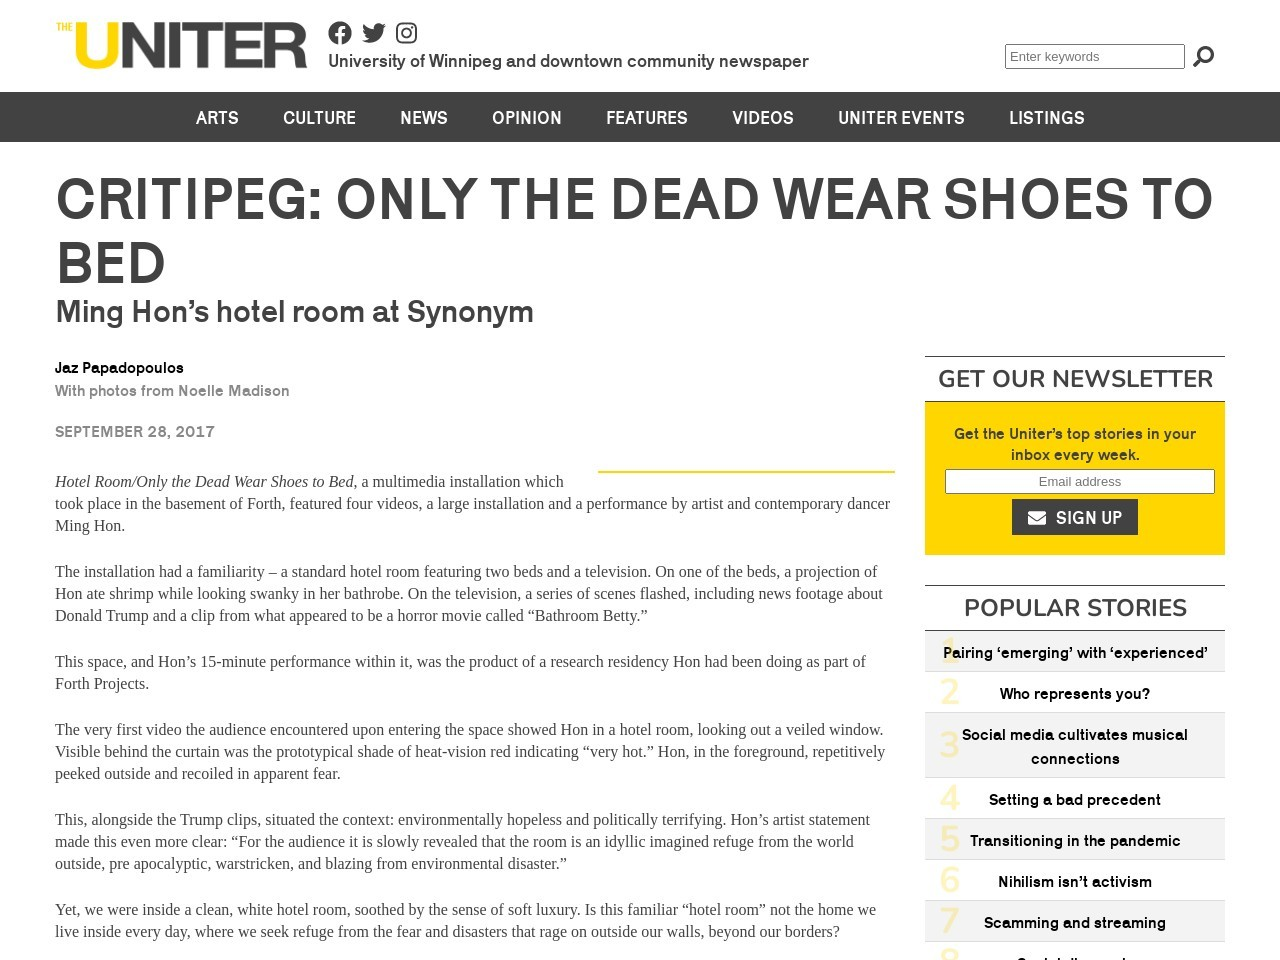 Critipeg: Only the dead wear shoes to bed